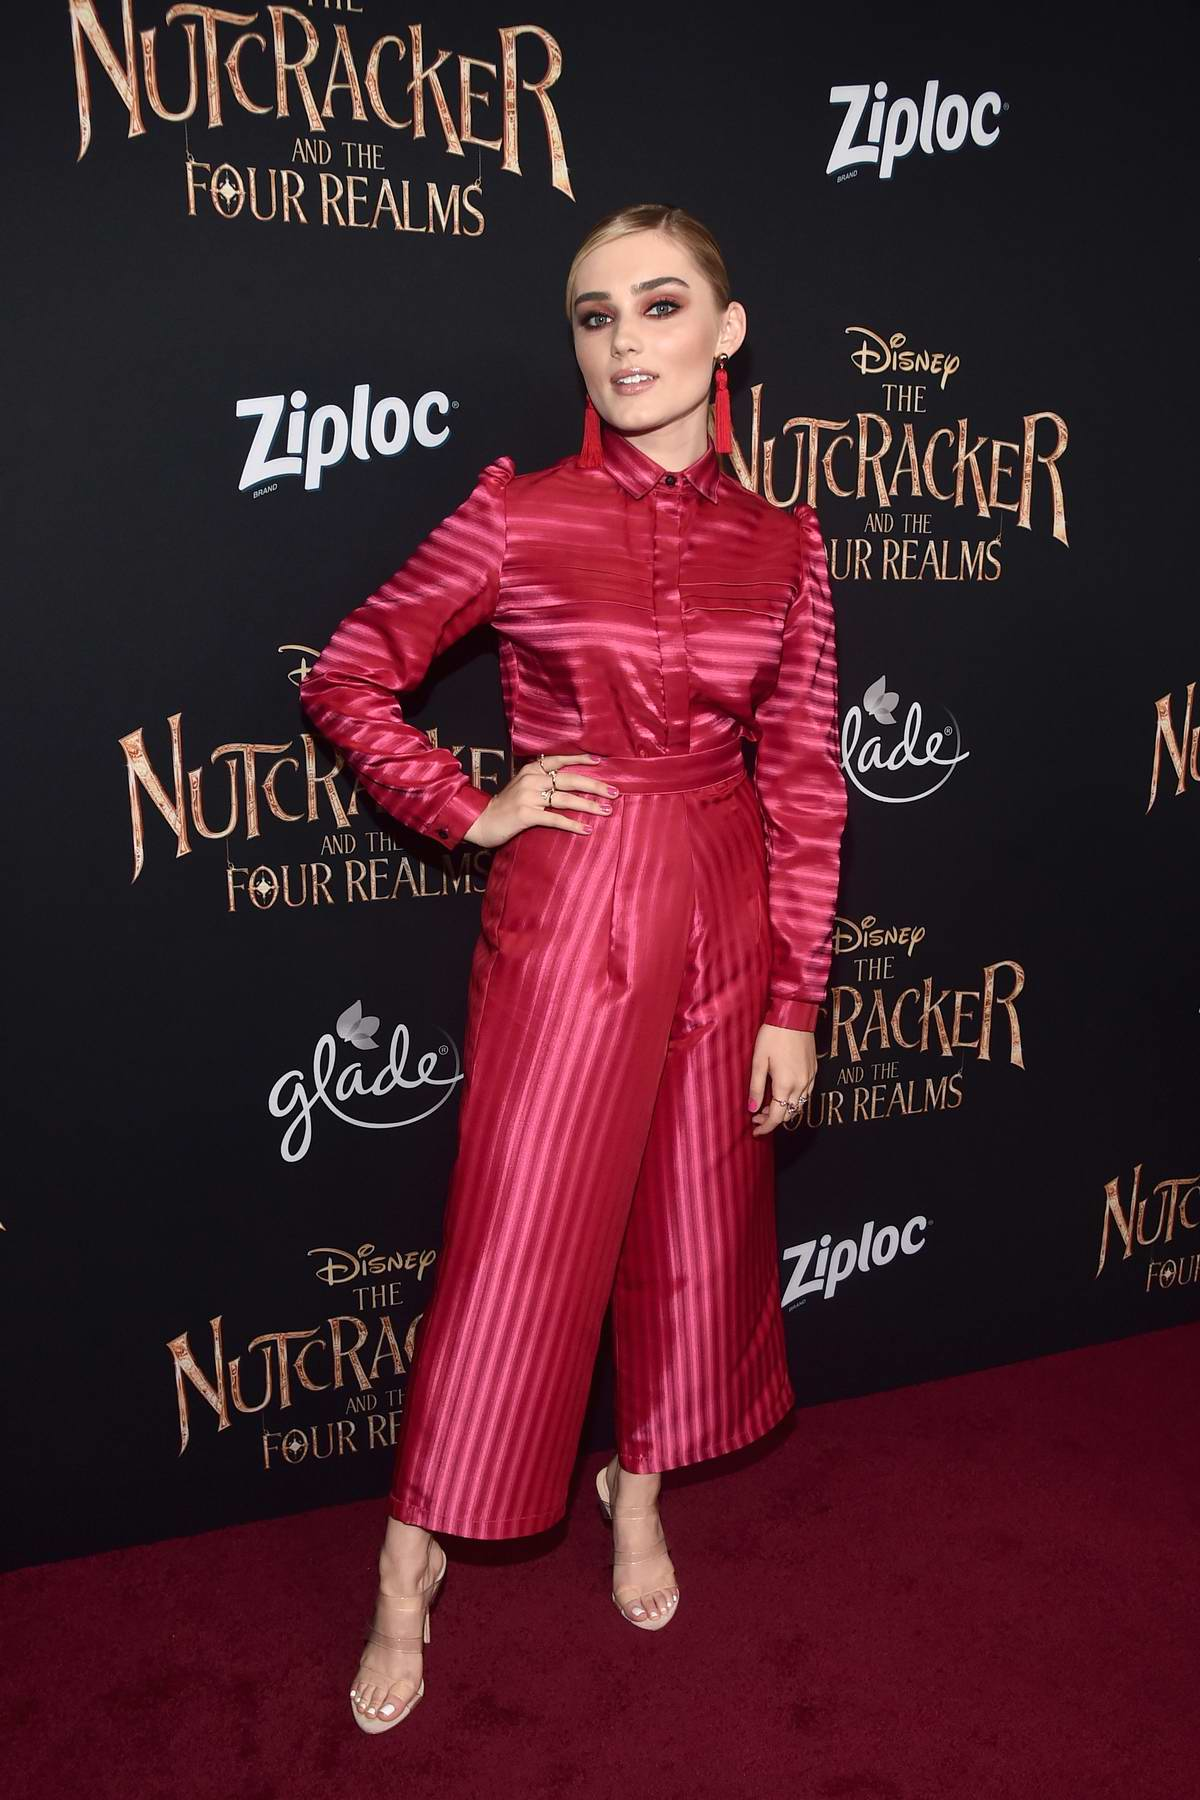 Meg Donnelly attends the World Premiere of Disney's 'The Nutcracker And The Four Realms' at Hollywood's El Capitan Theatre in Los Angeles